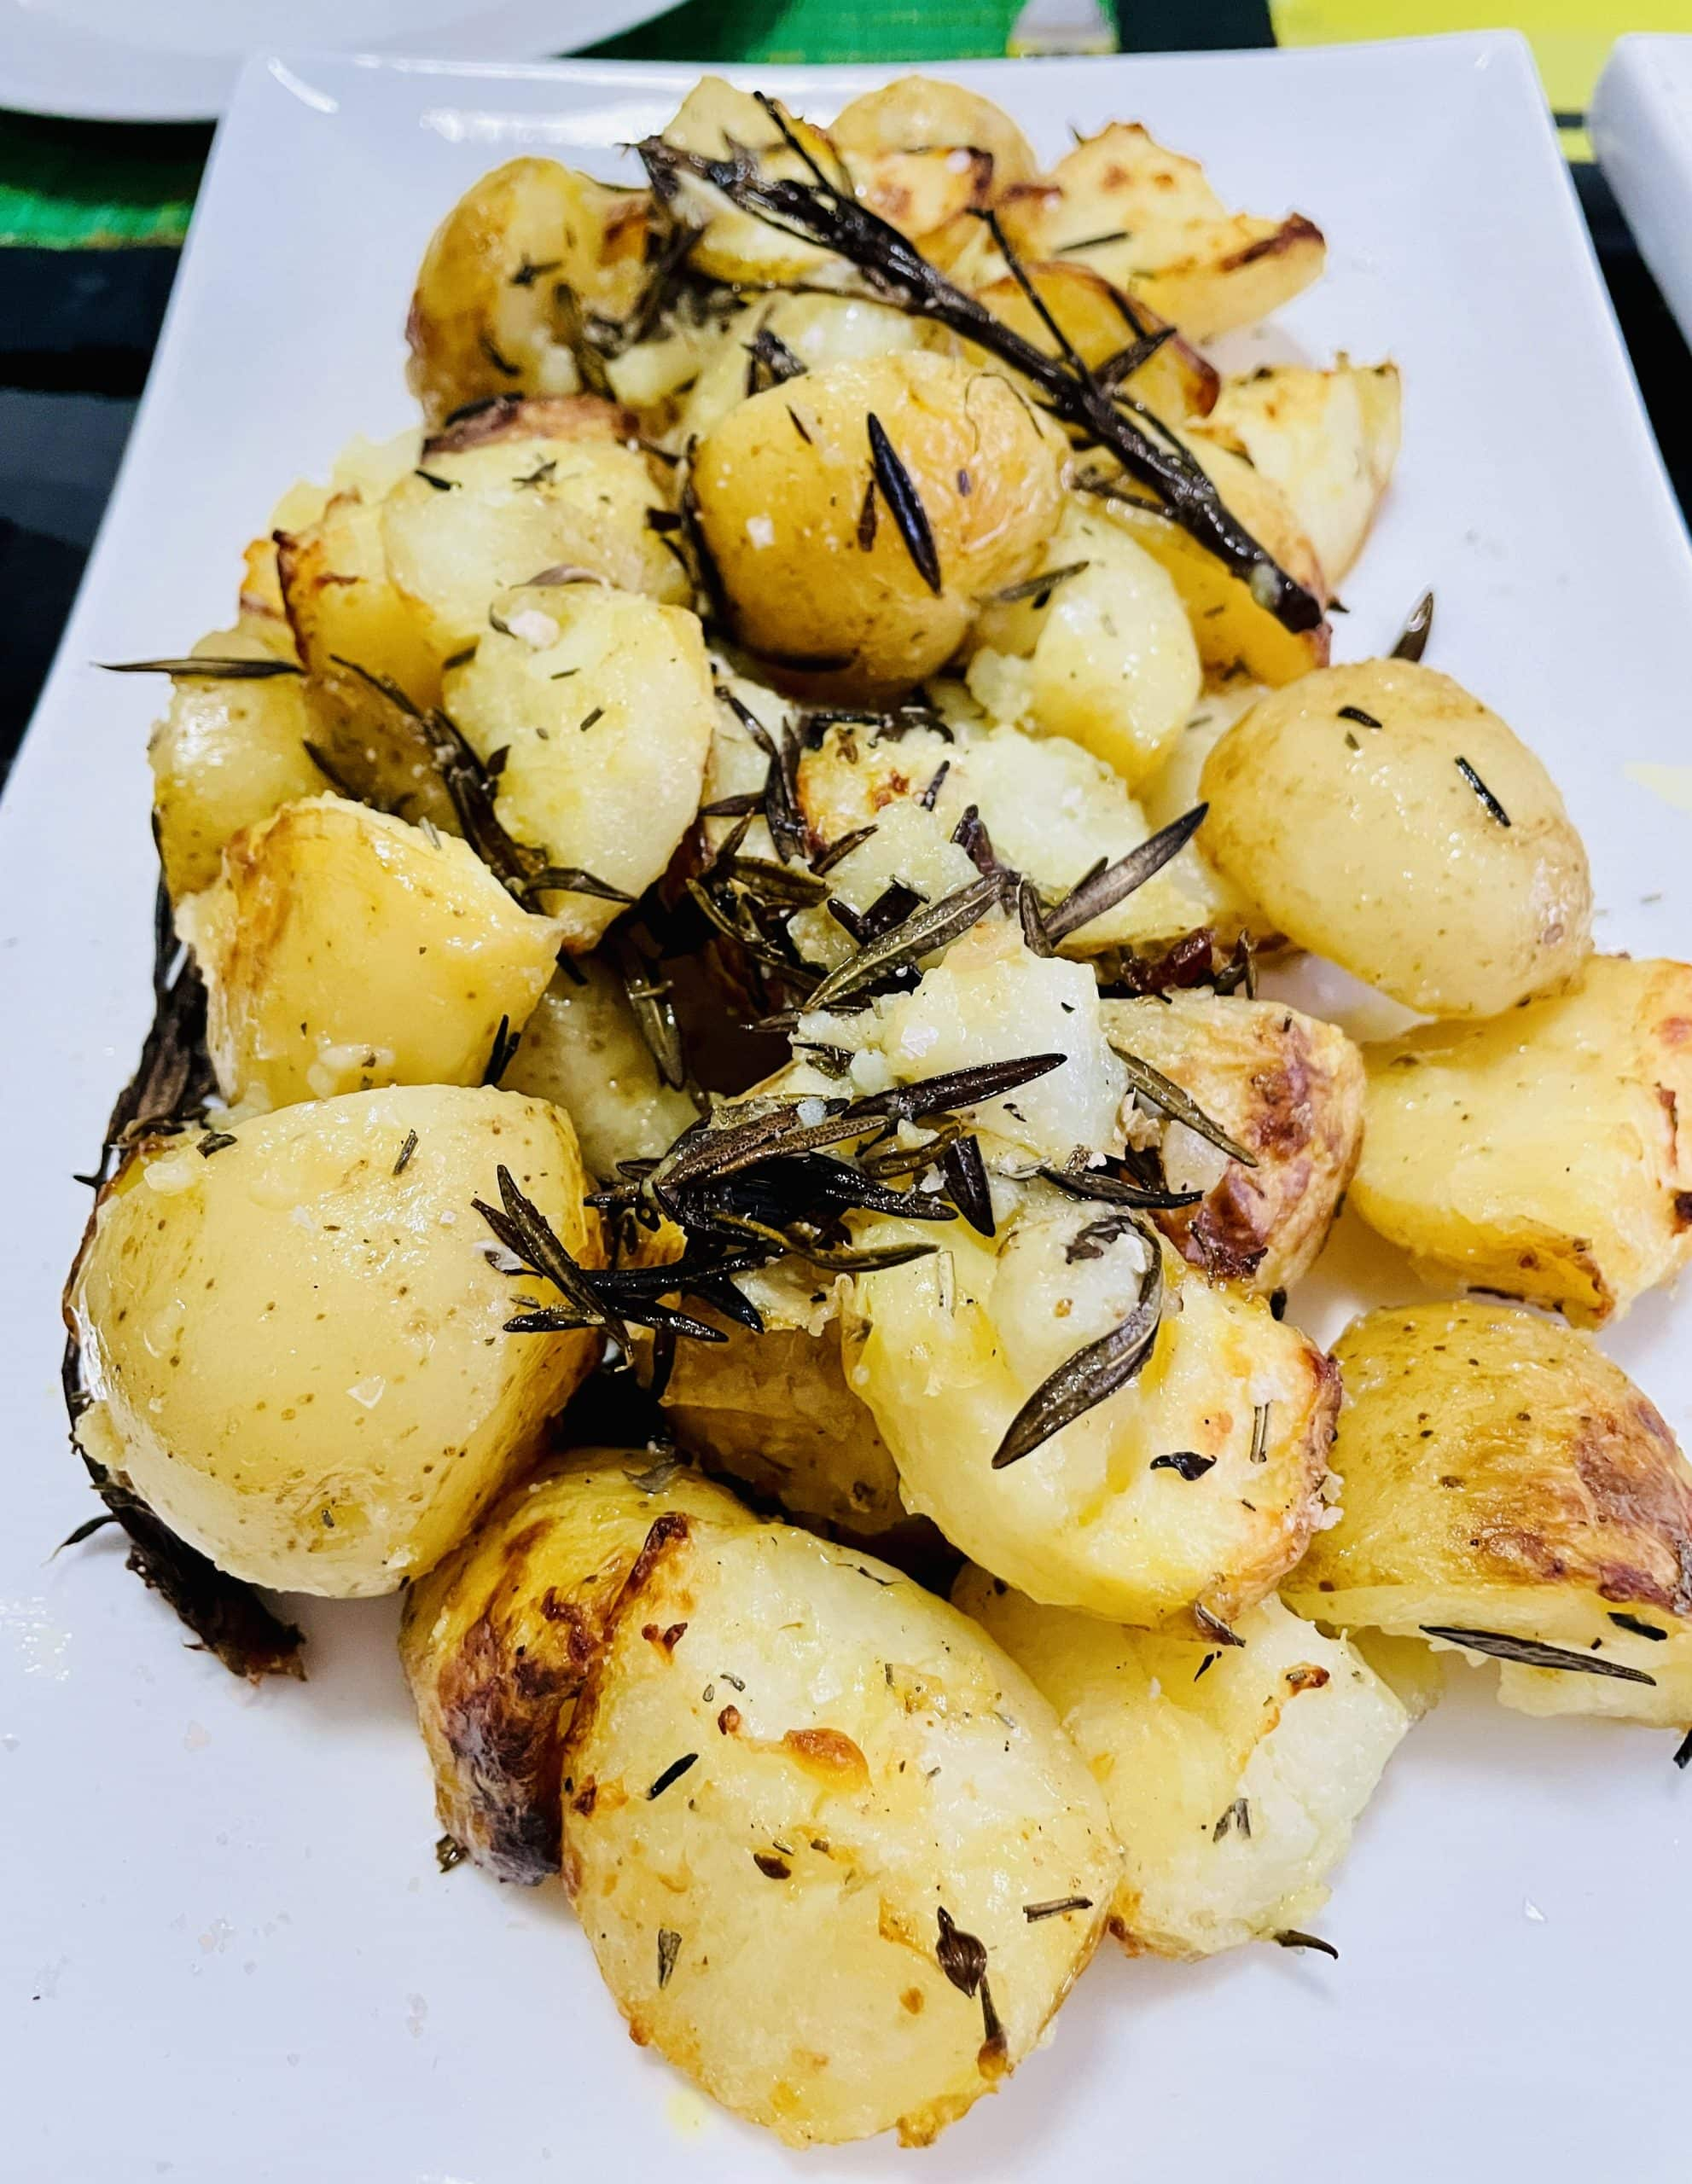 Black Truffle Cream Dorey 'w' Roasted Spuds & Lamb